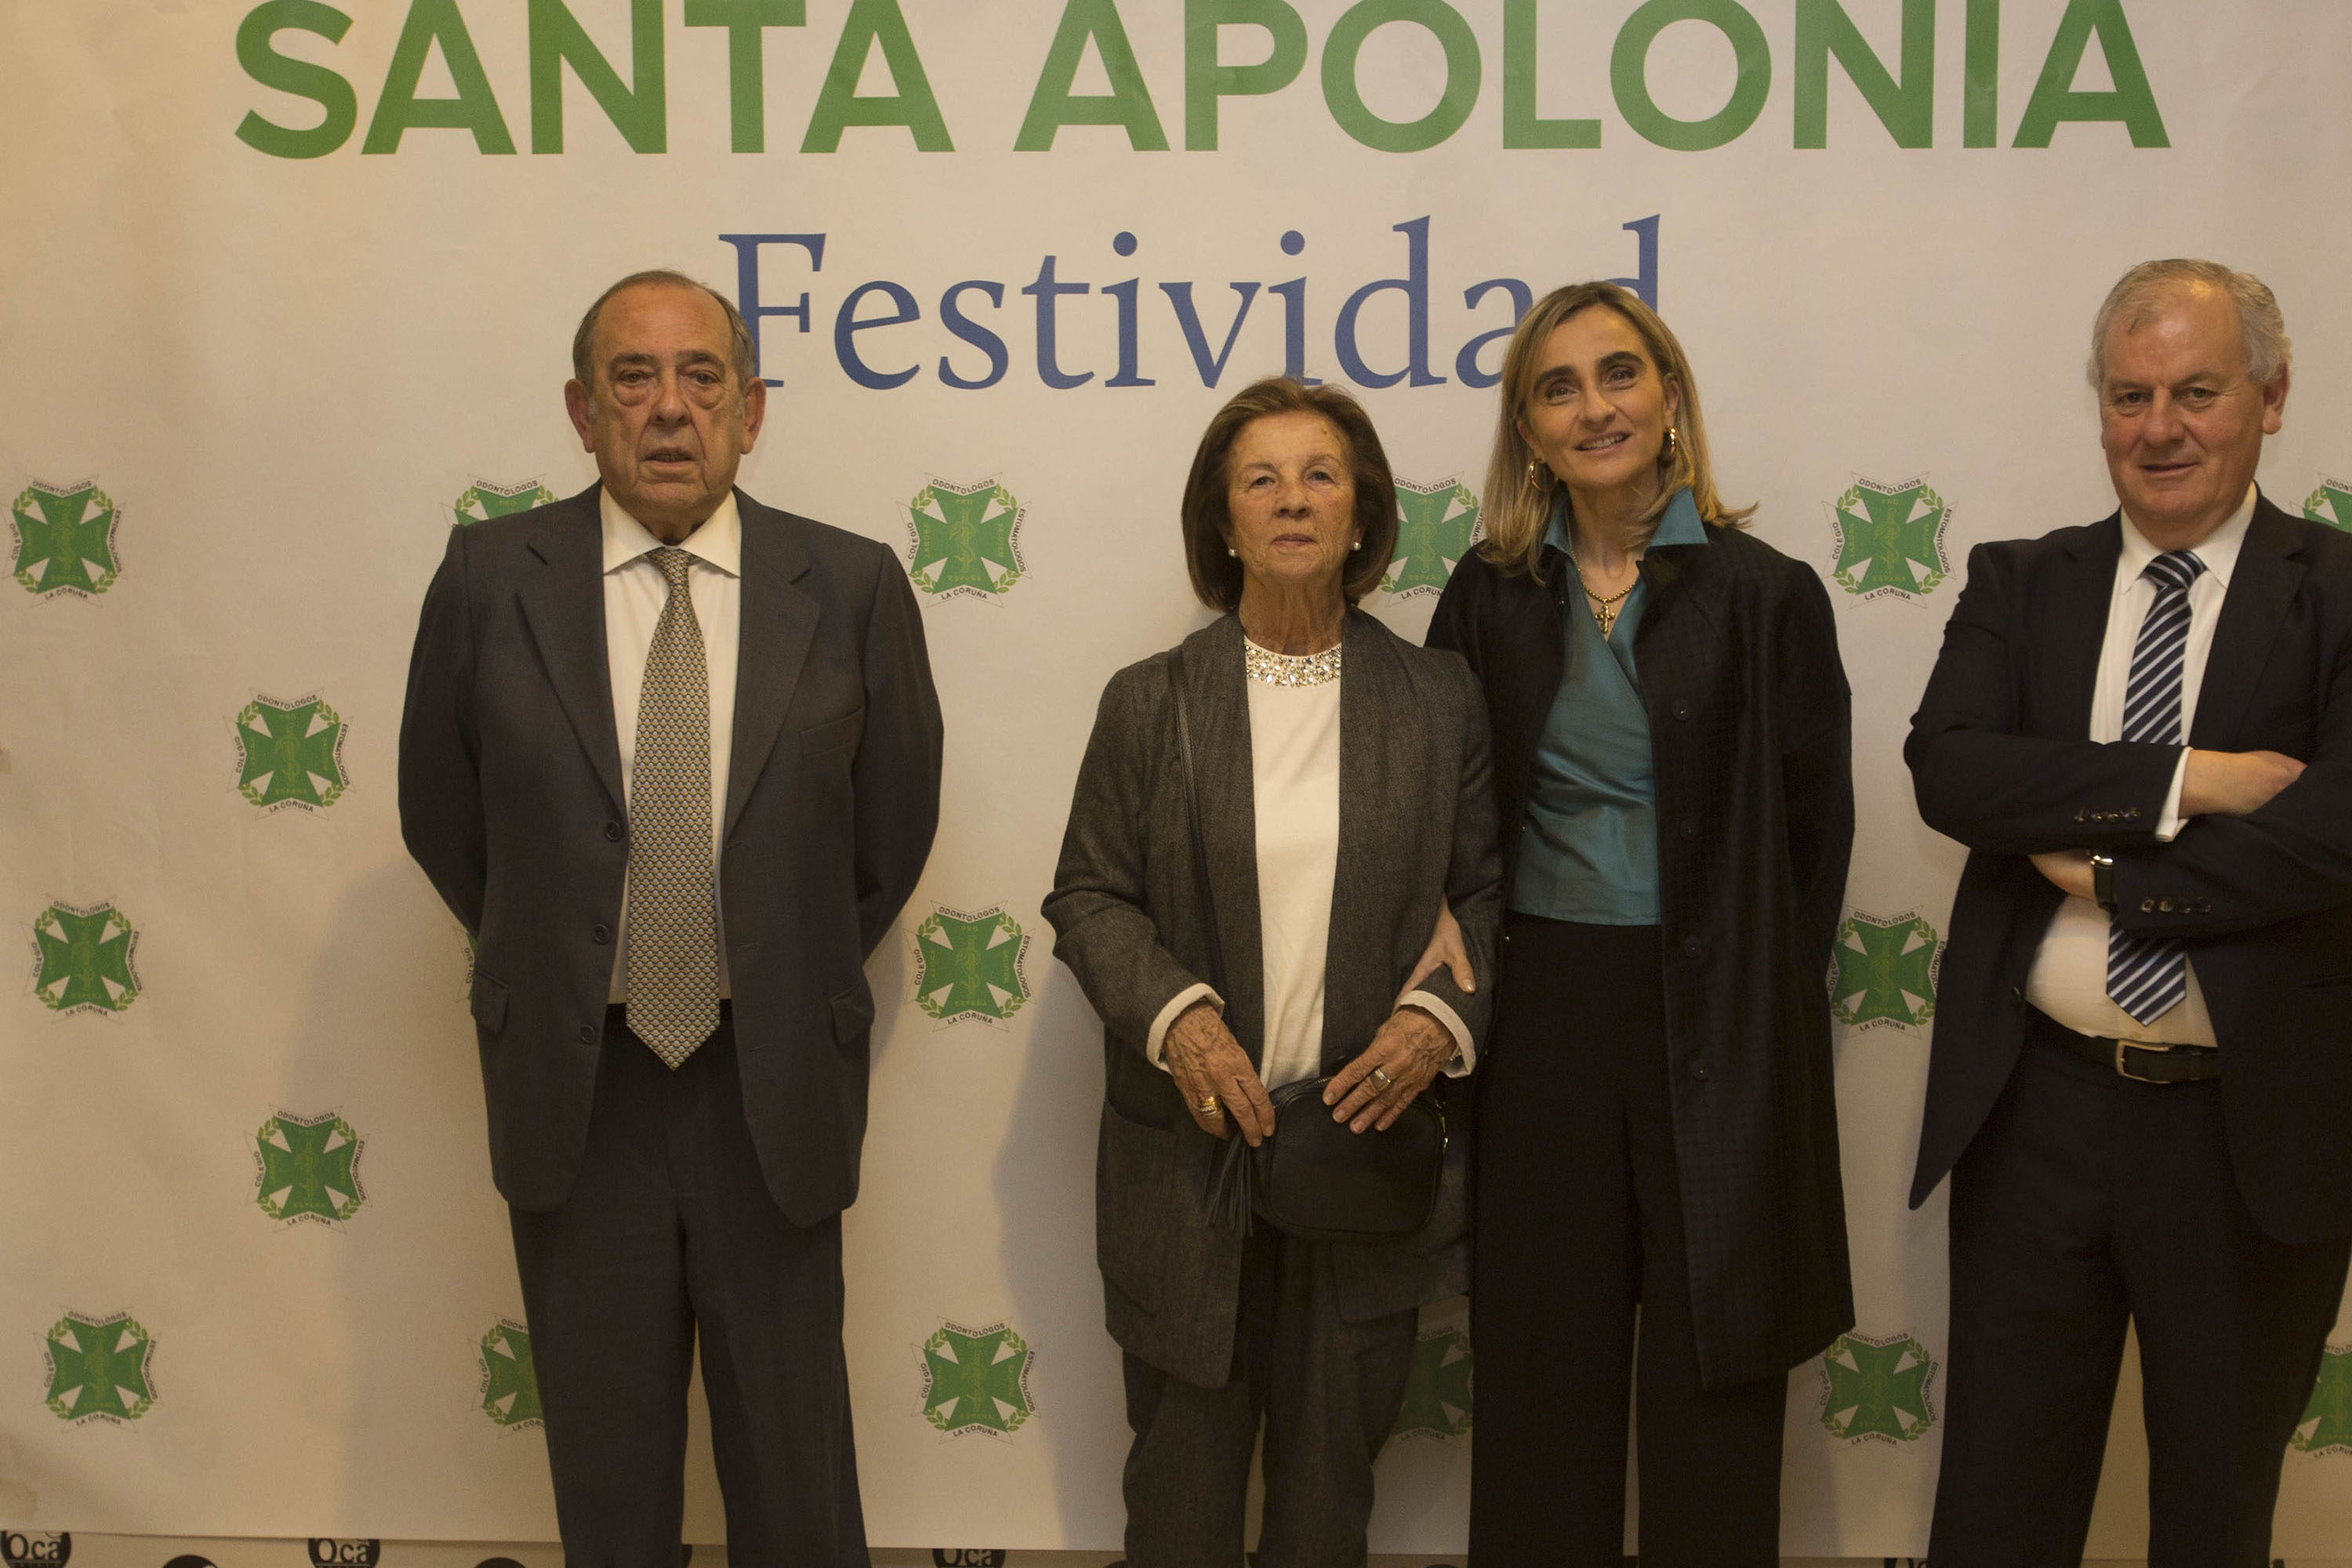 ICOEC_SantaApolonia2019_photocall-_0003__MG_0458